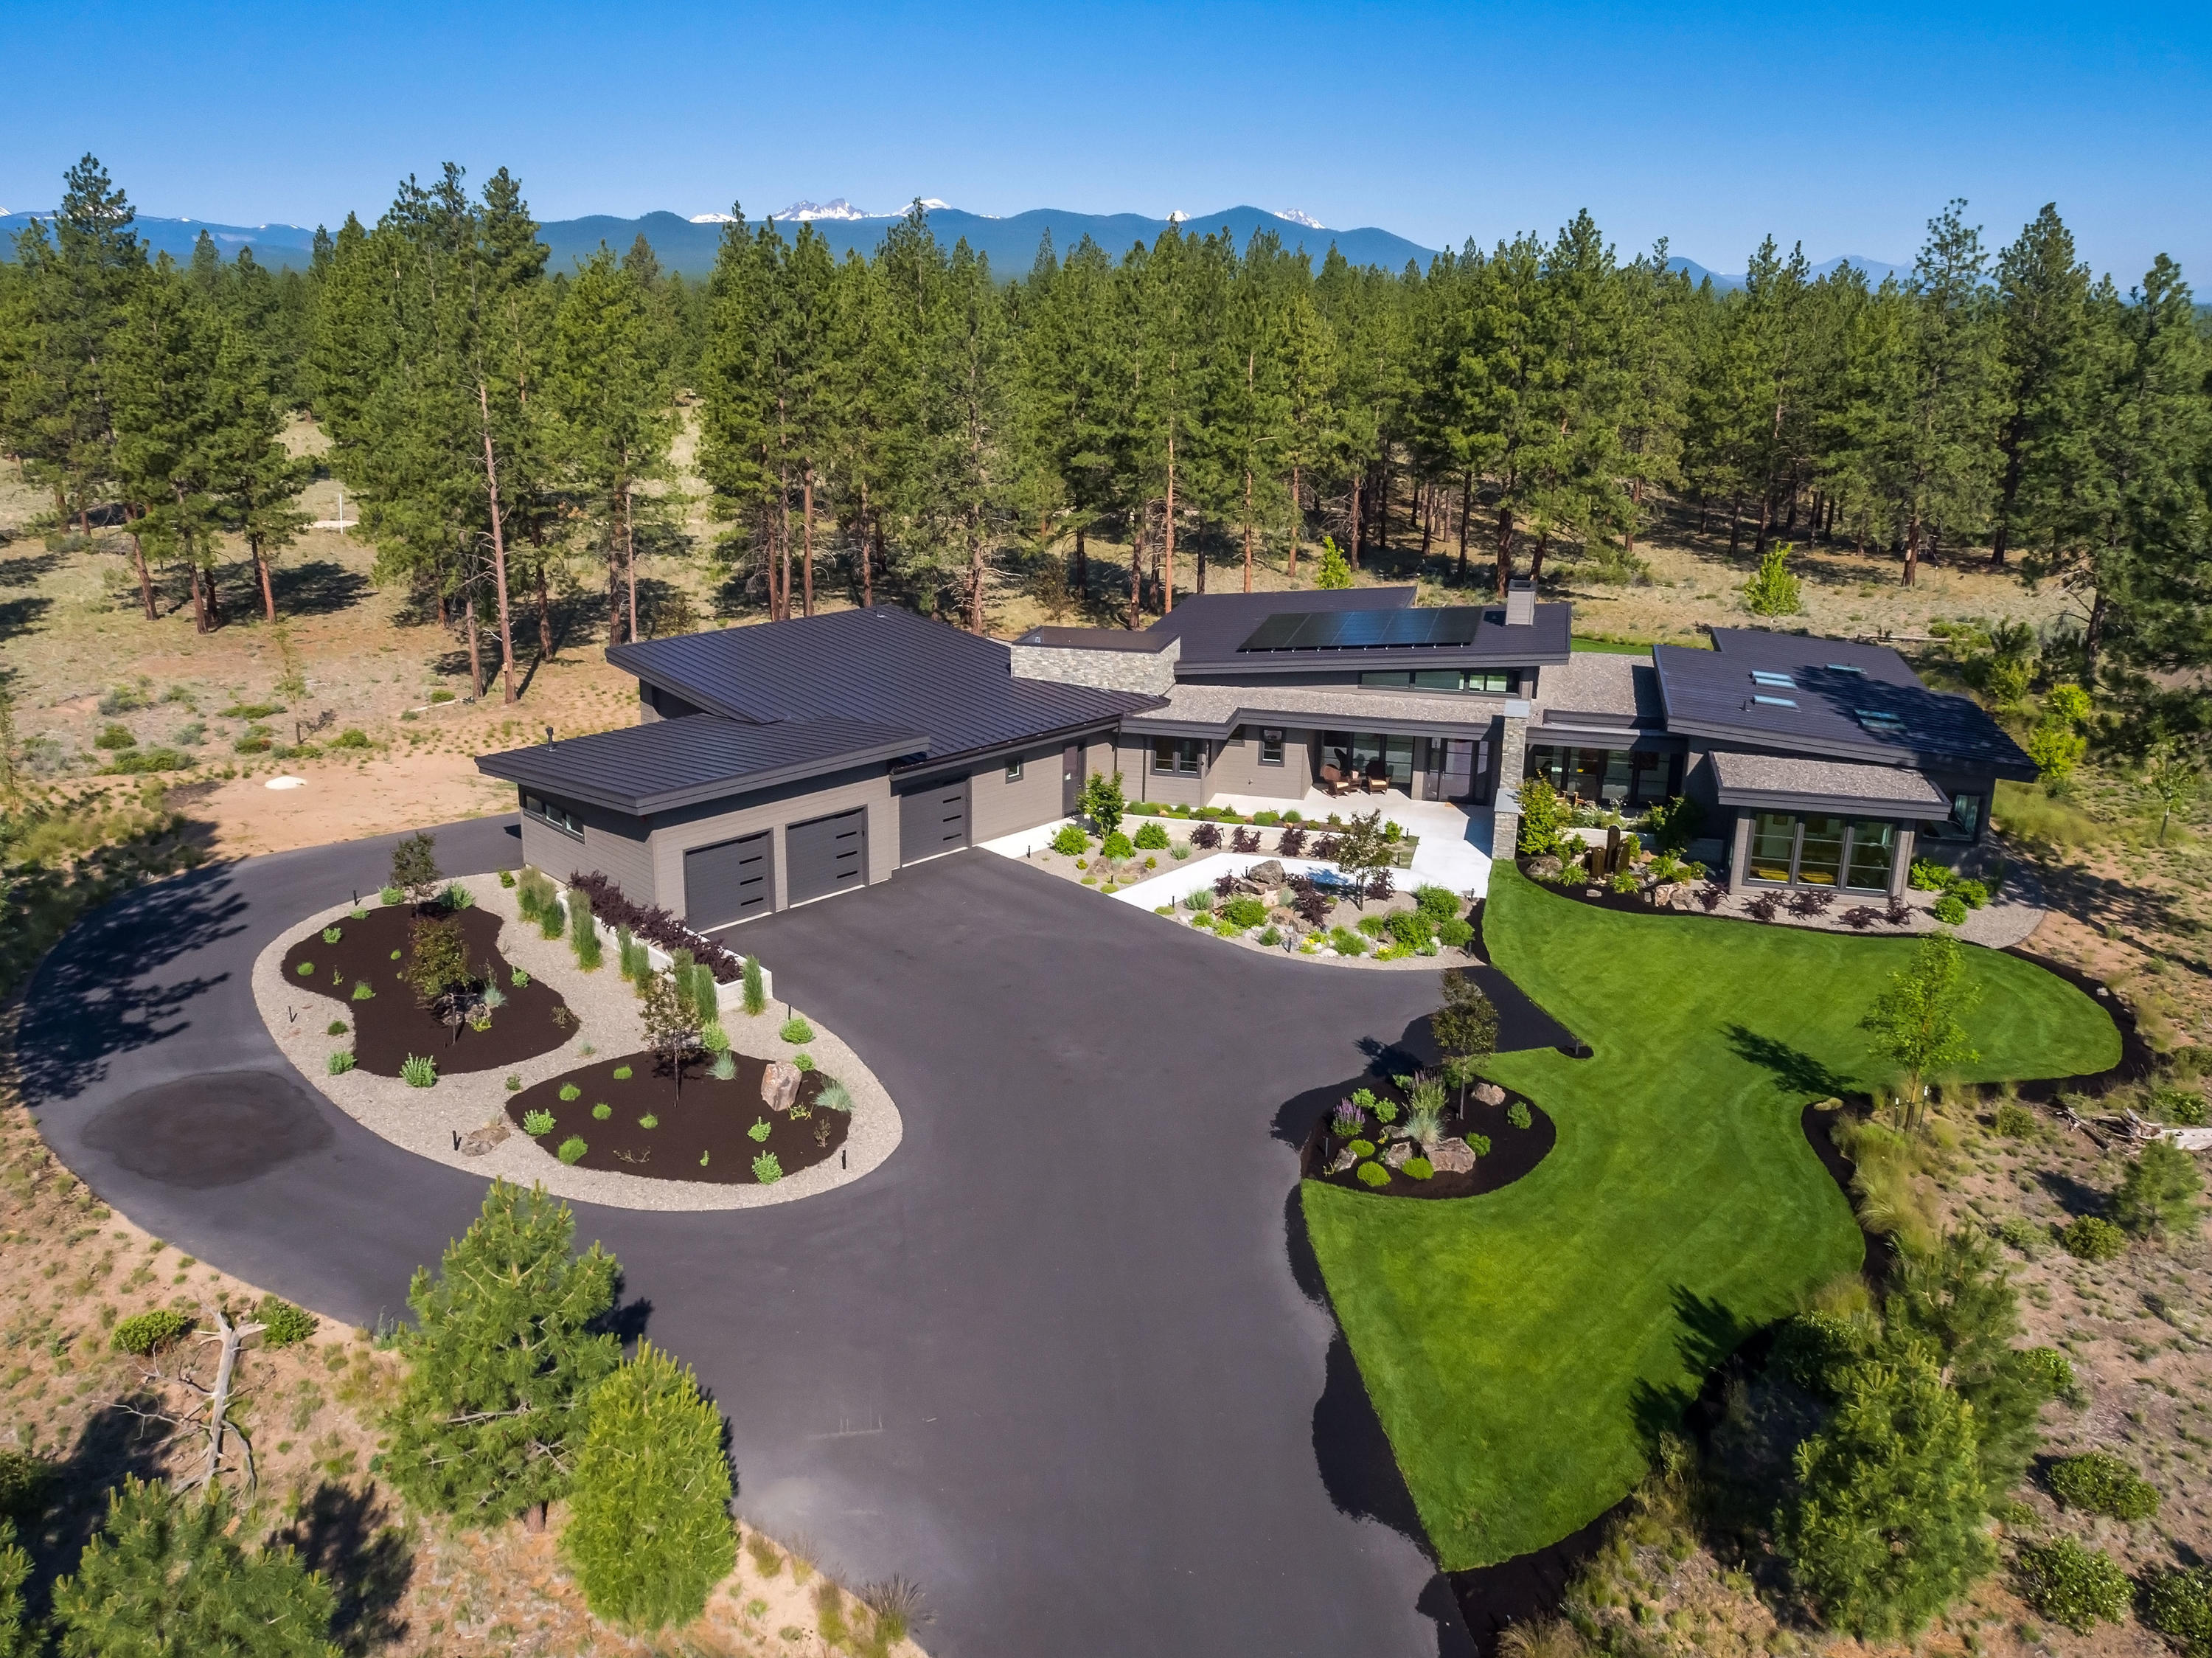 Rare opportunity to live in the exclusive Tree Farm community that offers just fifty diverse two-acre homesites on 400 acres of forest preserve. Bordered by Shevlin Park and U.S. Forest Service land, you are quite literally at the doorstep of Mother Nature's playground. Enjoy uncompromising craftsmanship and finishes throughout this luxurious single-level contemporary masterpiece: matte quartz countertops, white oak floors, custom doors and built-in cabinets; lighted bathroom mirrors; 4 car heated garage including a separate RV parking area (2,291 SF of garage space); smart home features, solar power and so much more. Soak up the abundant sunshine in your open concept great room by the custom Heterofocus 1400 polished steel, wood fireplace while fresh mountain air flows in through the oversized sliding doors that seamlessly integrate the indoor and outdoor living areas. After a long day of work or play, unwind in the private, tranquil backyard in the Hot Springs salt water hot tub.